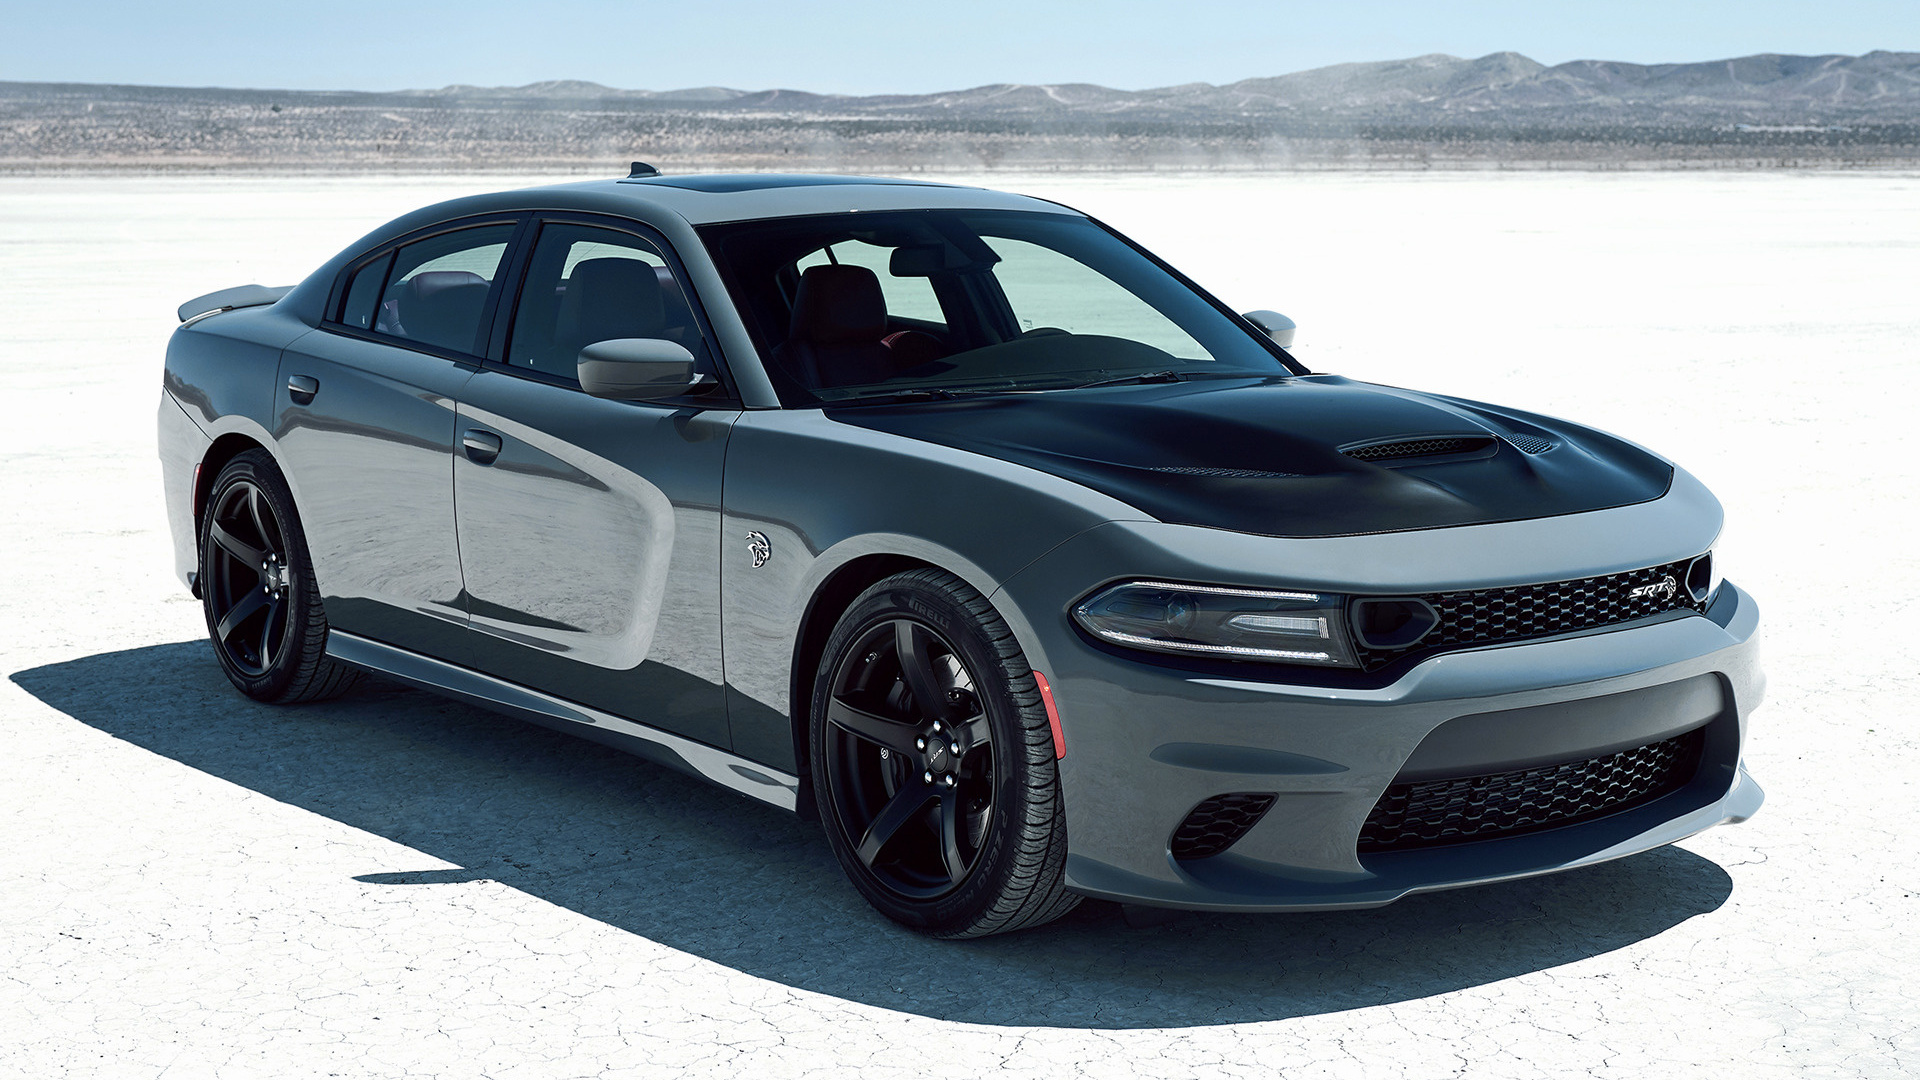 2019 Dodge Charger SRT Hellcat - Wallpapers and HD Images | Car Pixel